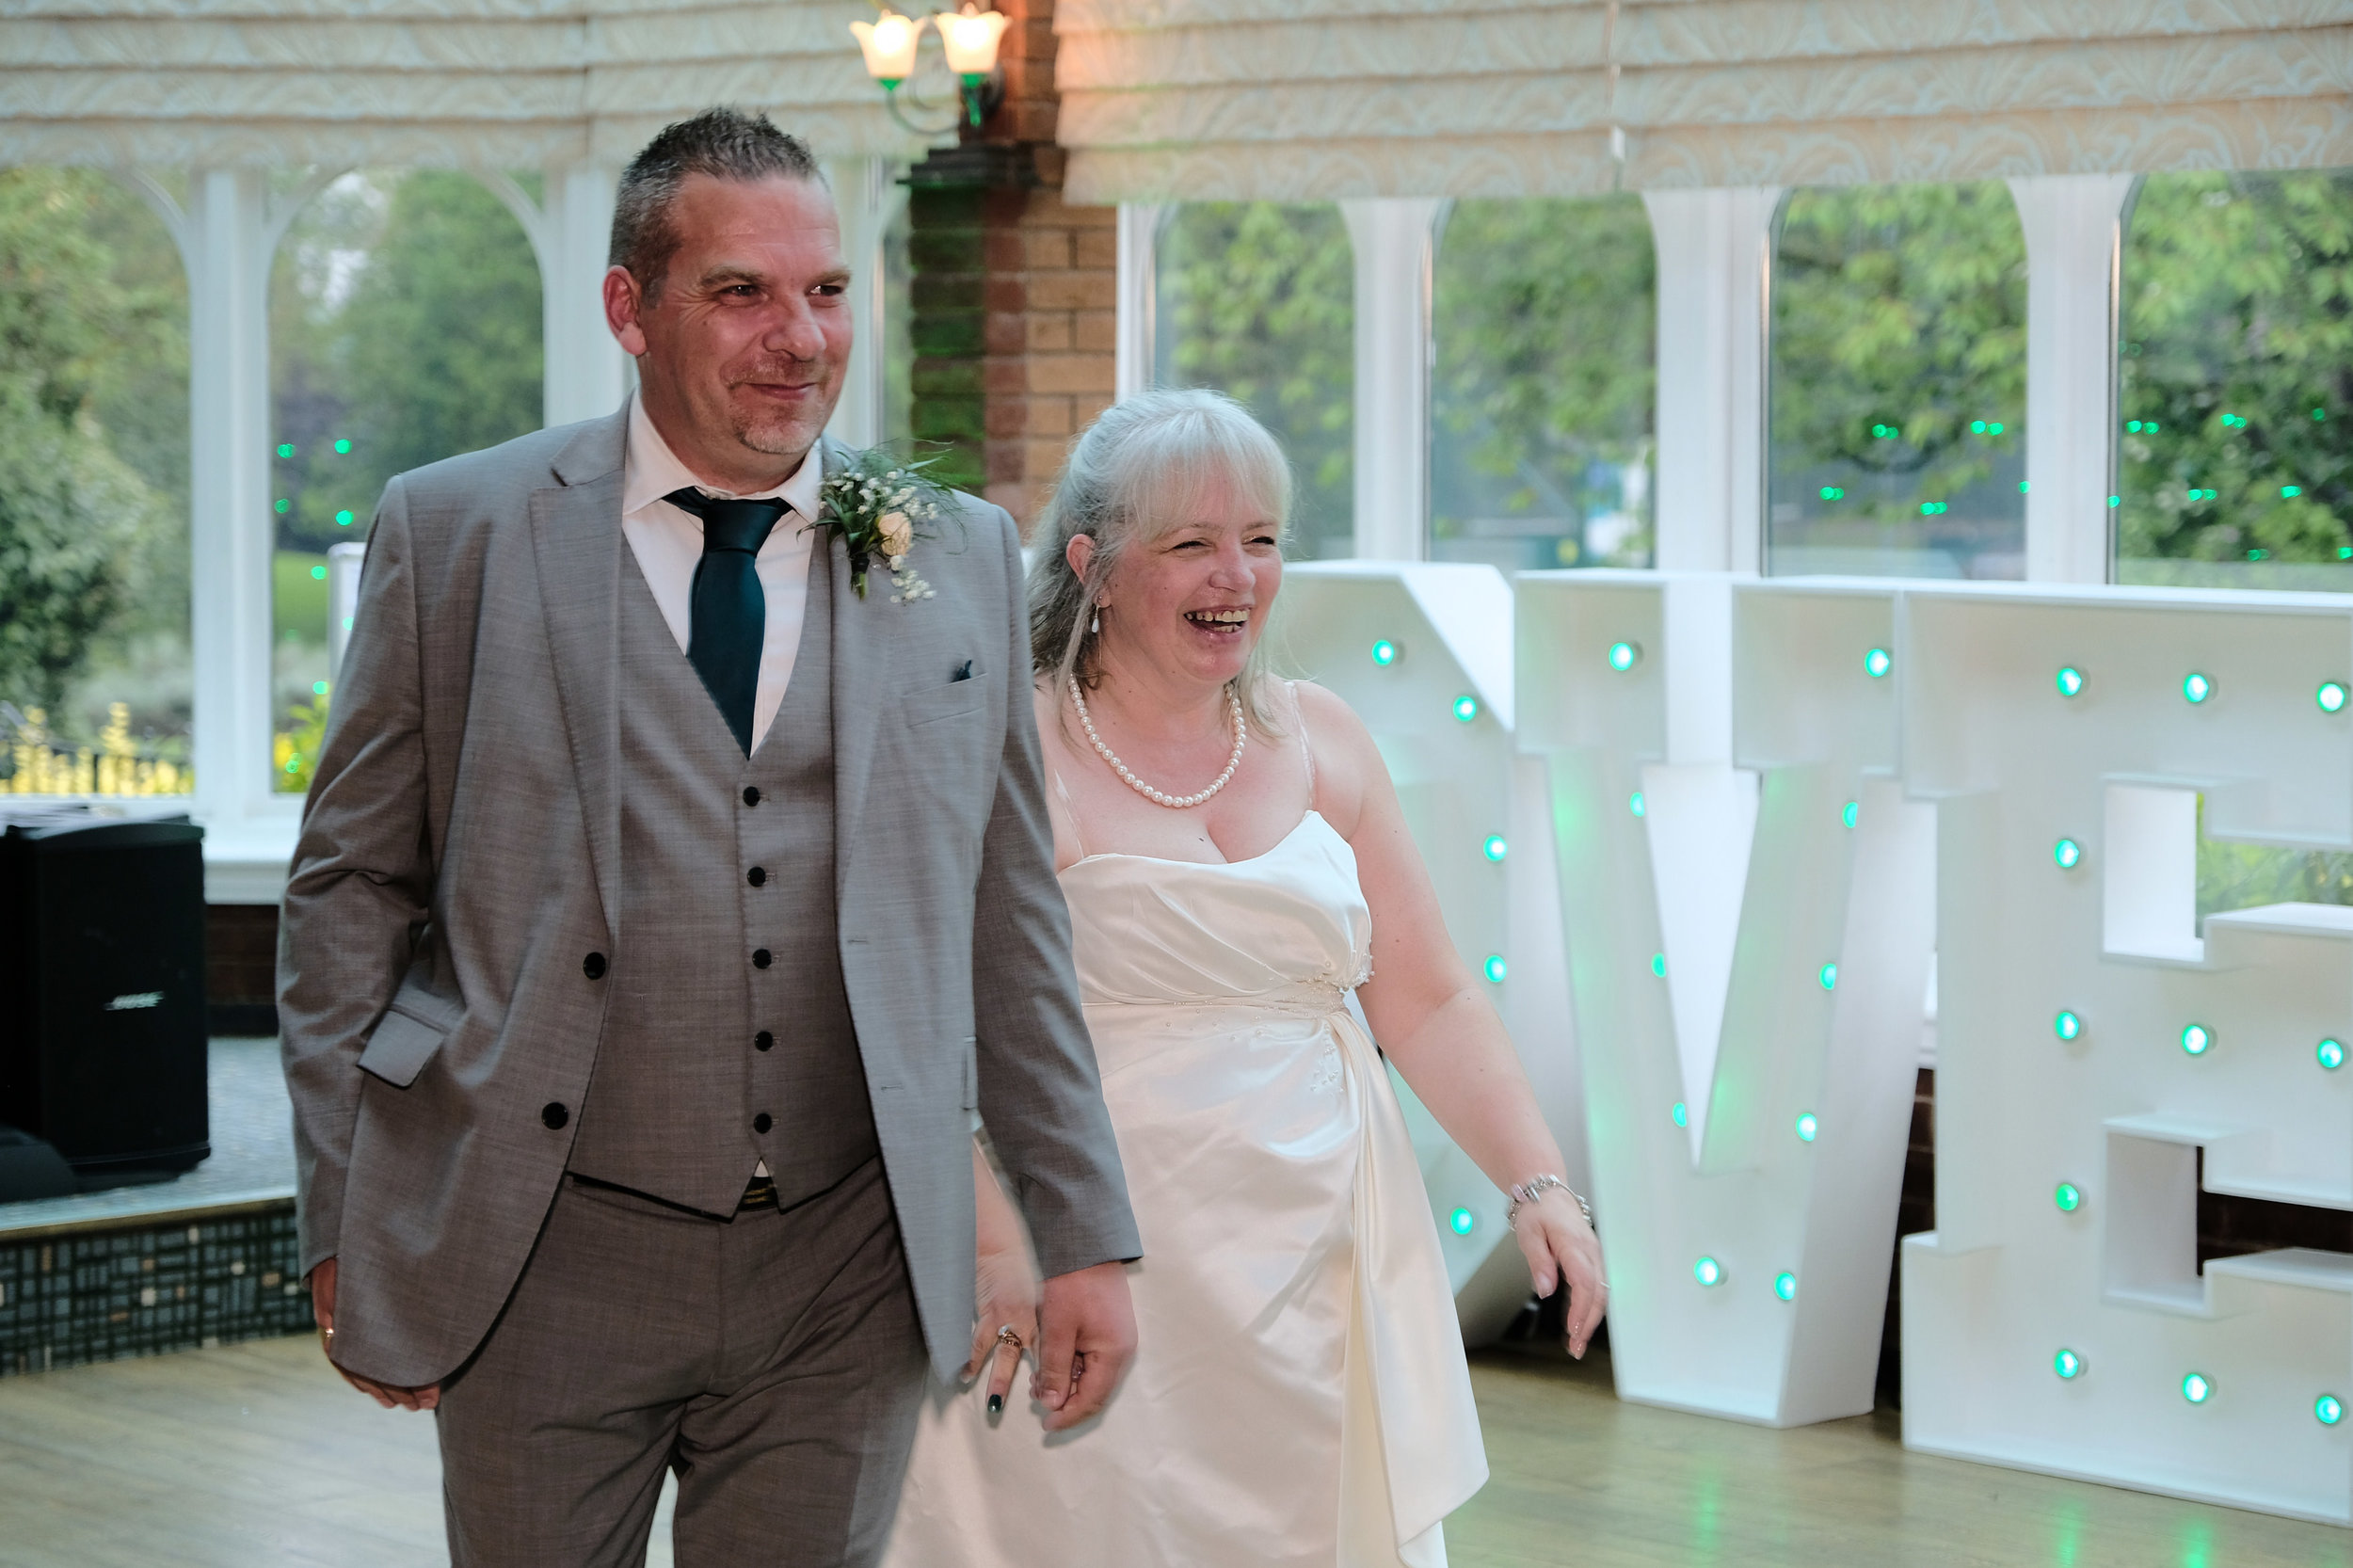 Warwickshire Wedding Photographer Ardencote Manor House 34 - happy couple after the first dance.jpg